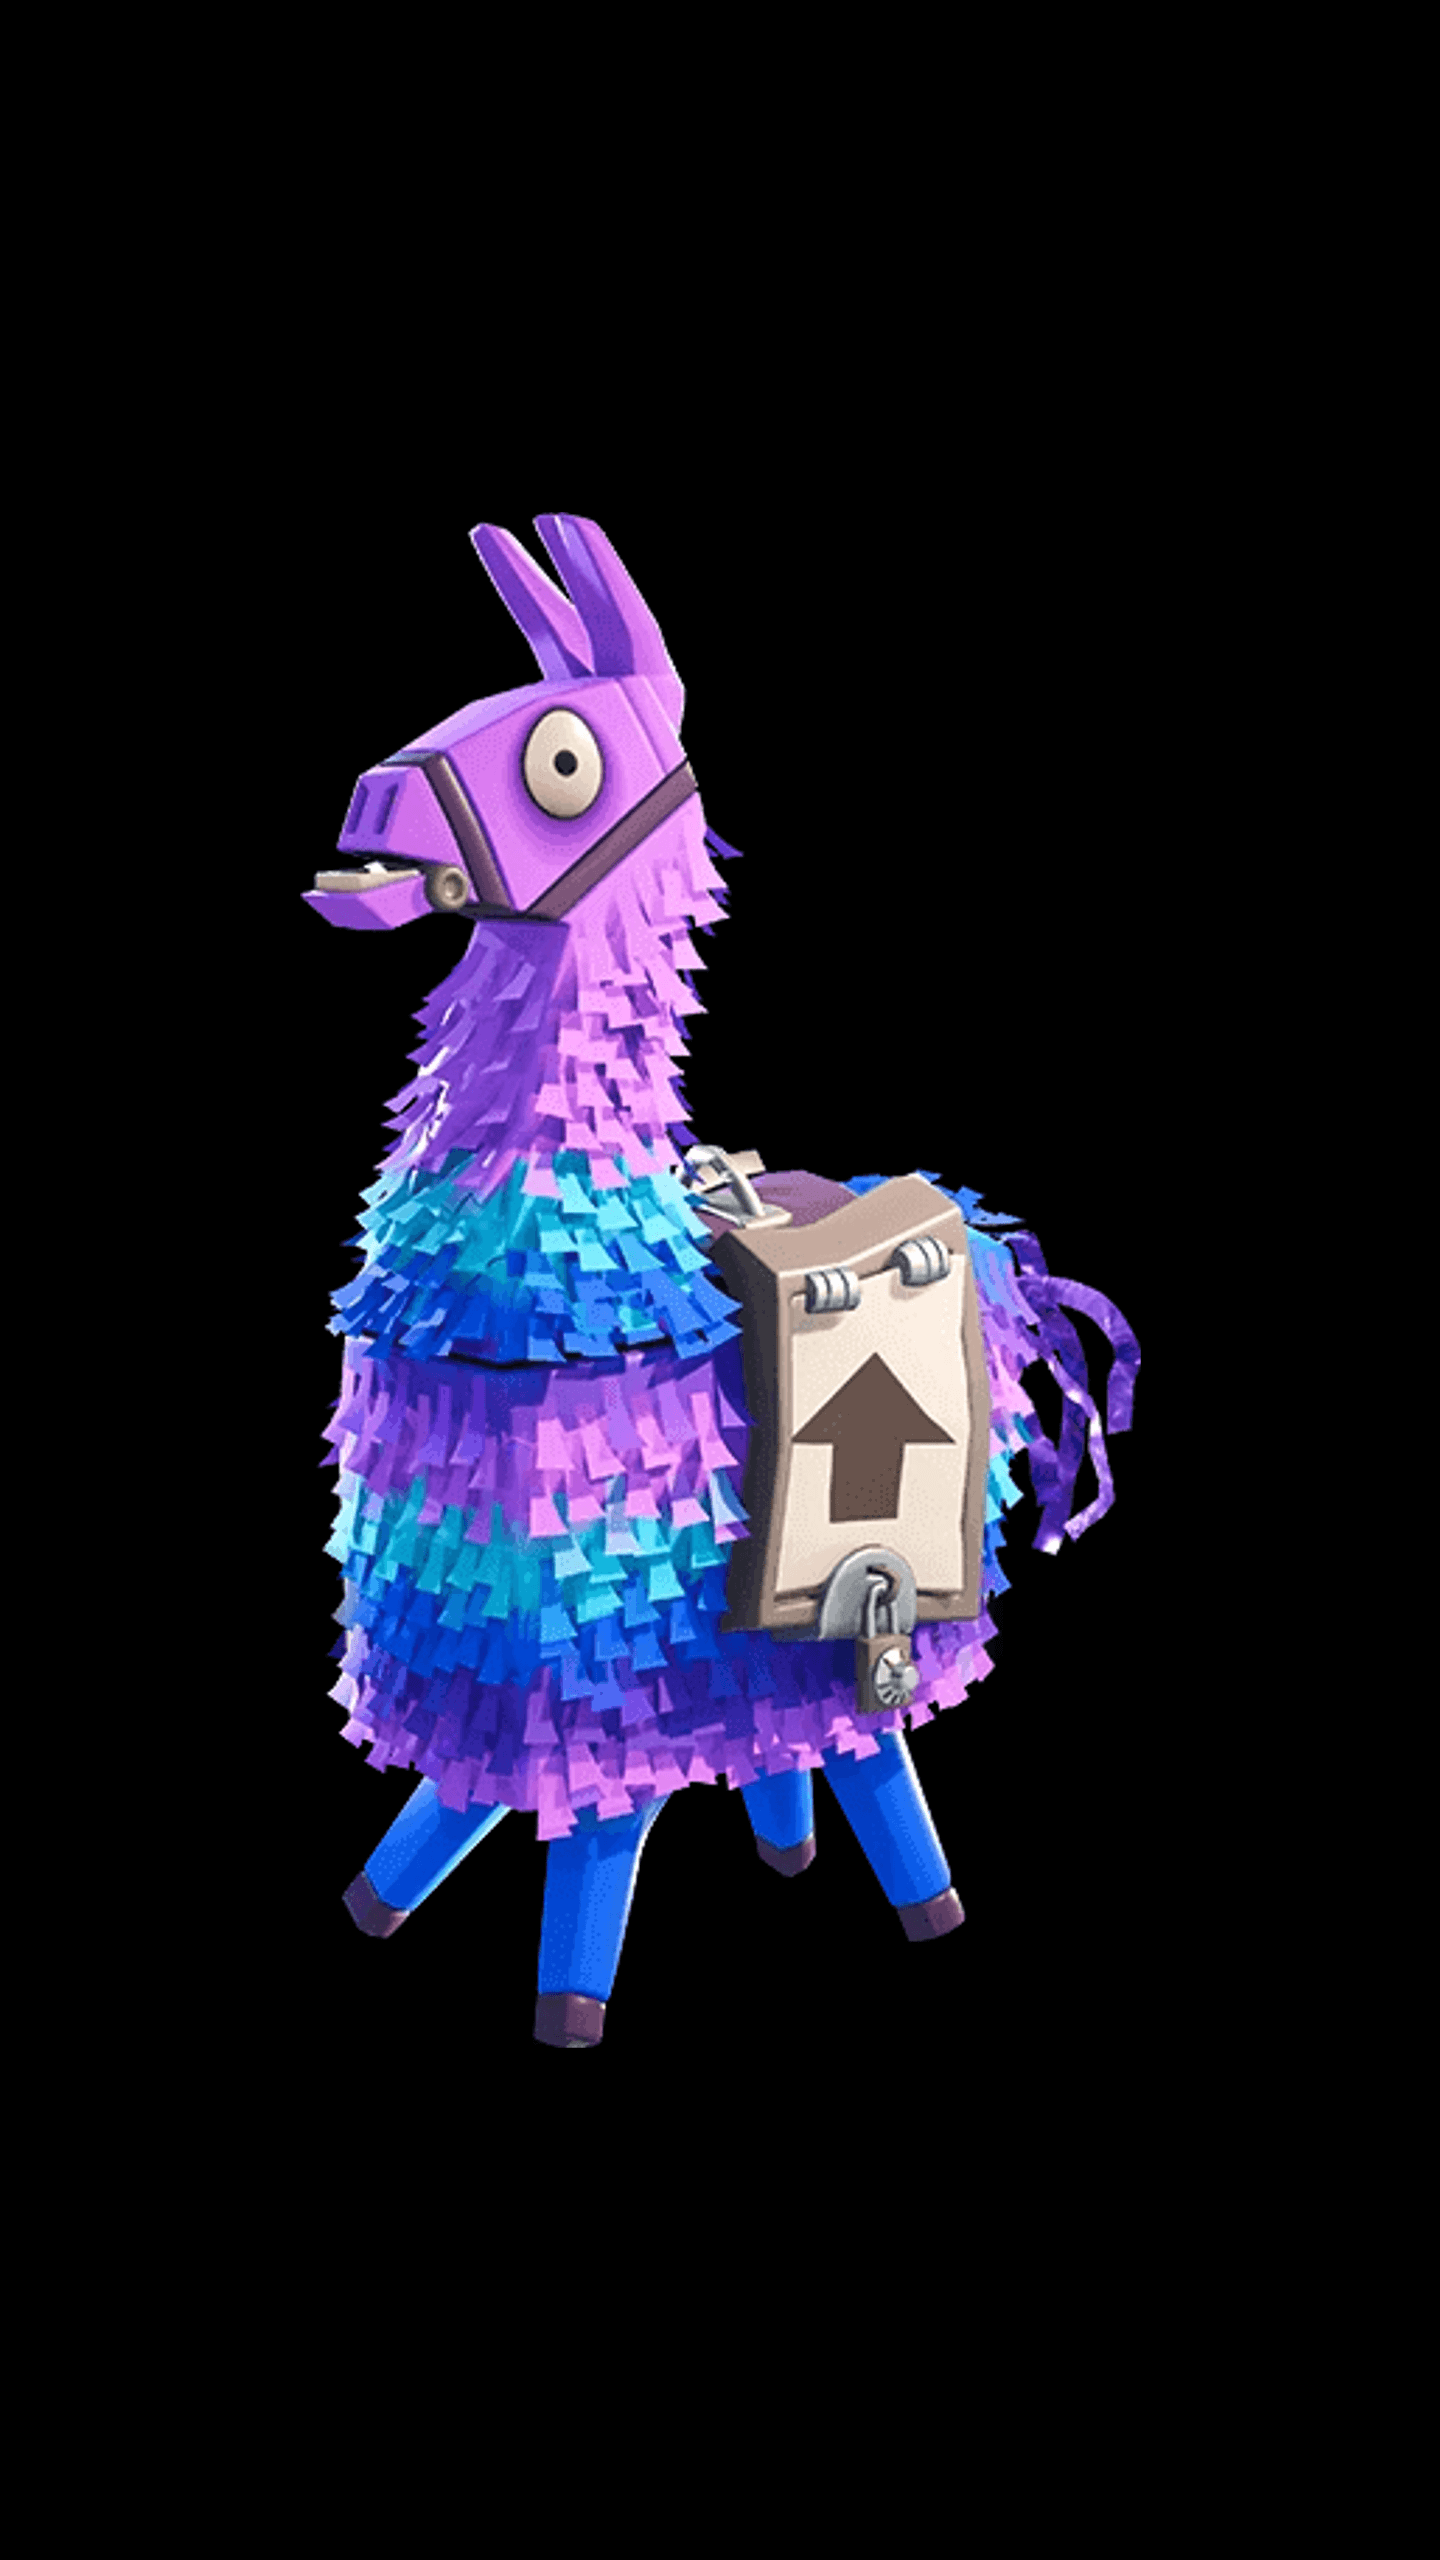 Fortnite lama wallpapers wallpaper cave - Fortnite llama background ...